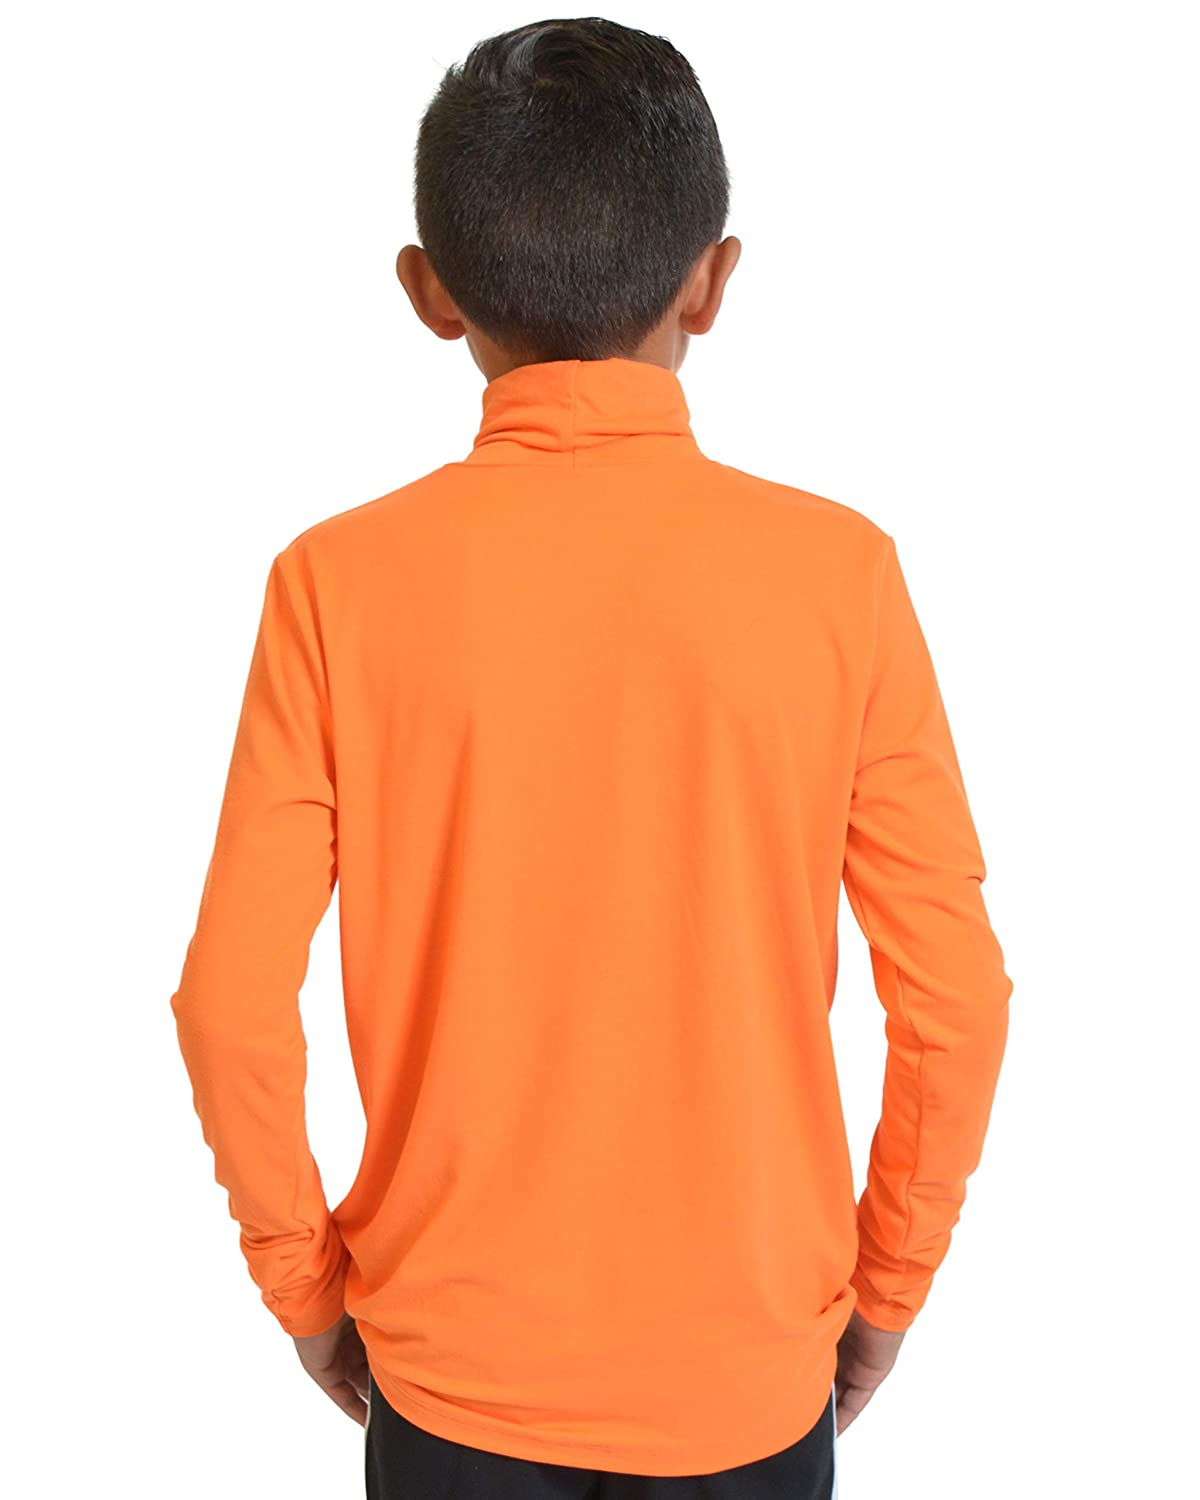 Stretch is Comfort Boys and Mens Long Sleeve Soft Turtleneck